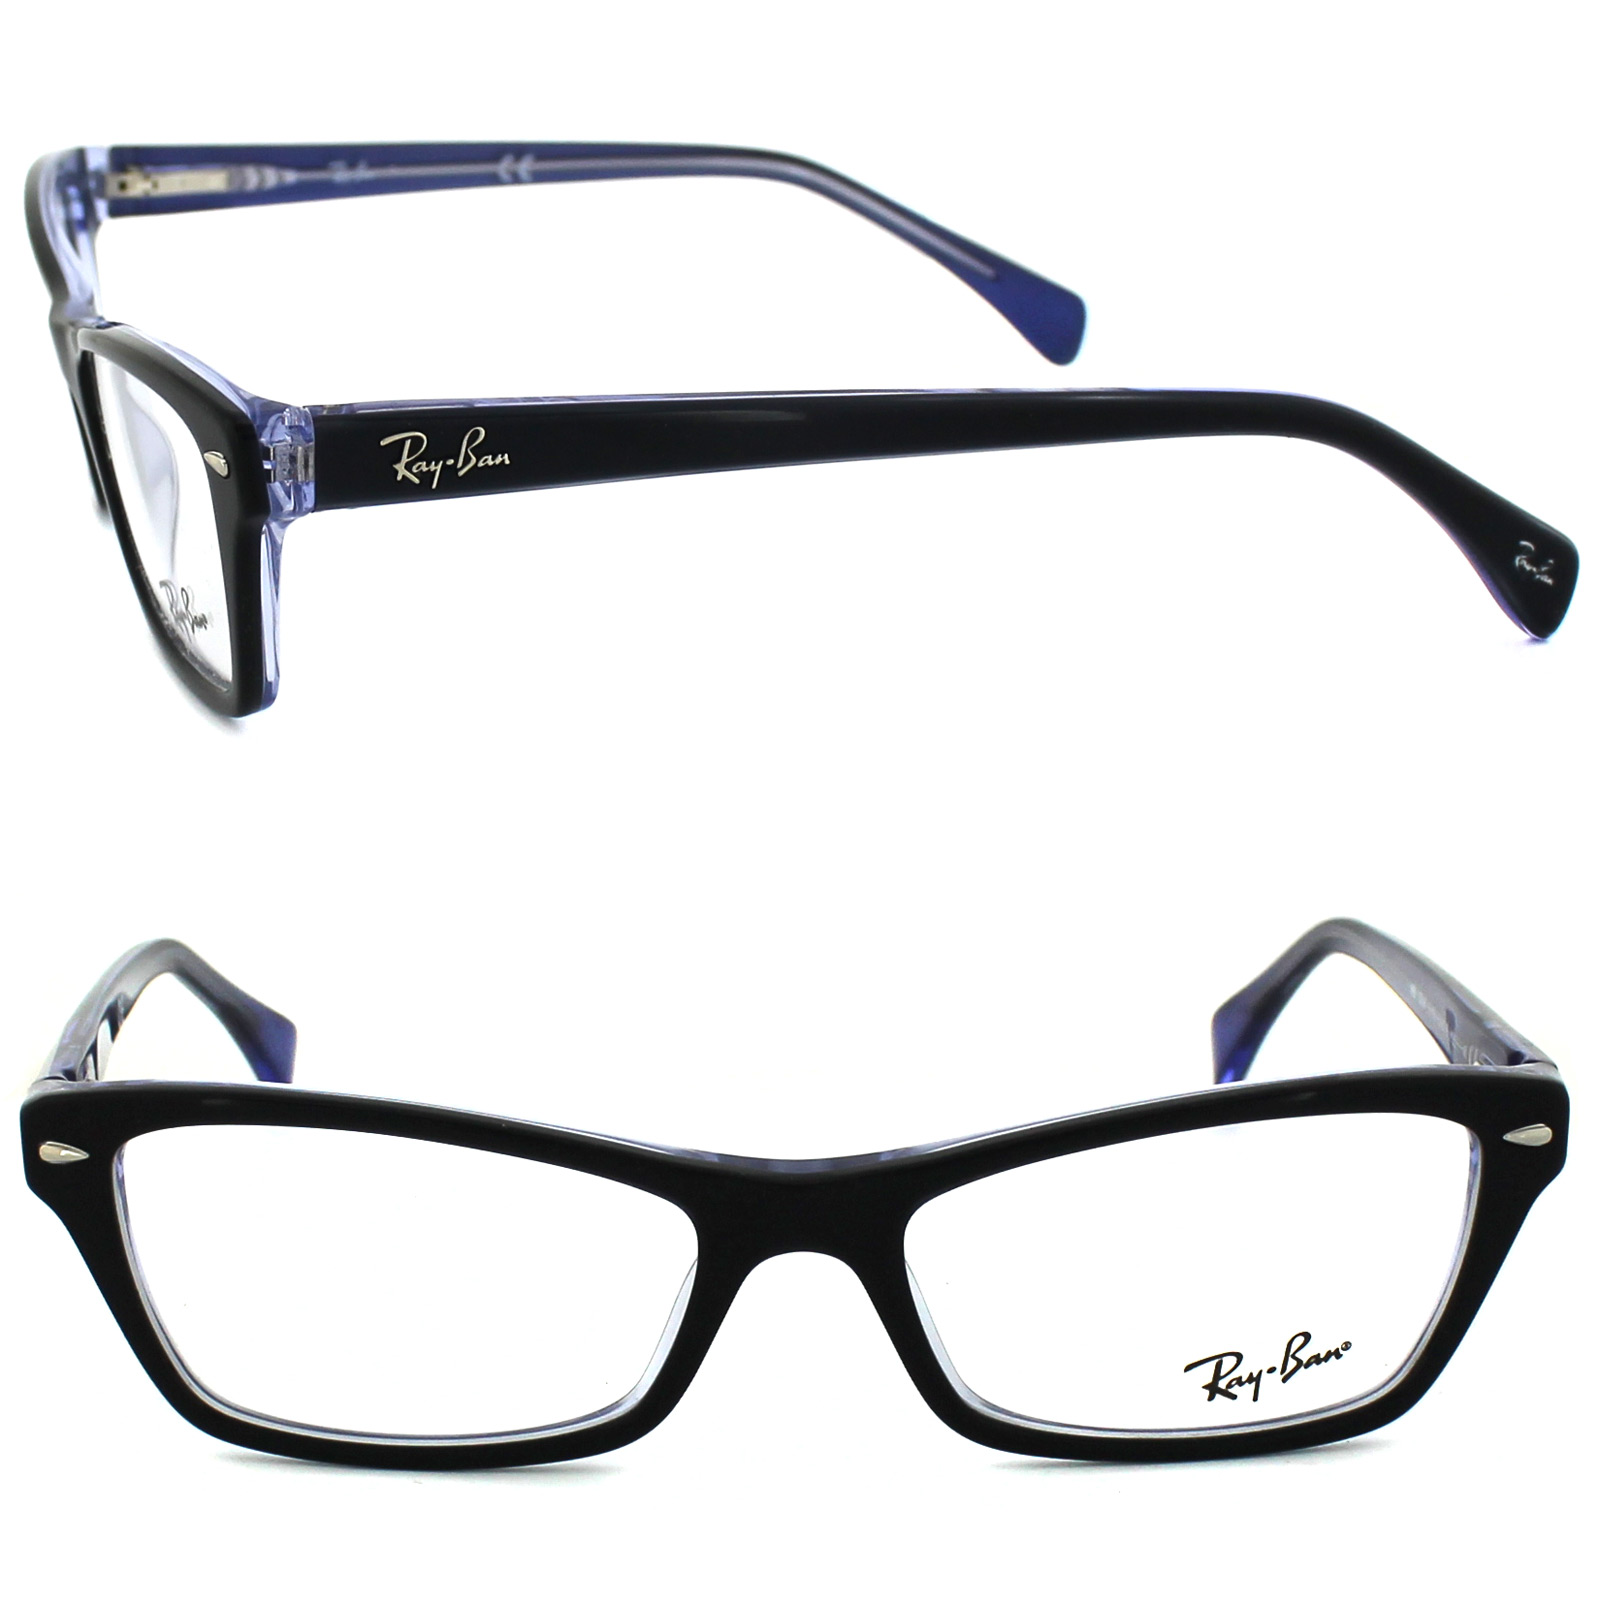 Affordable Eyeglass Frames Philippines : Cheap Ray Ban Eyeglass Frames